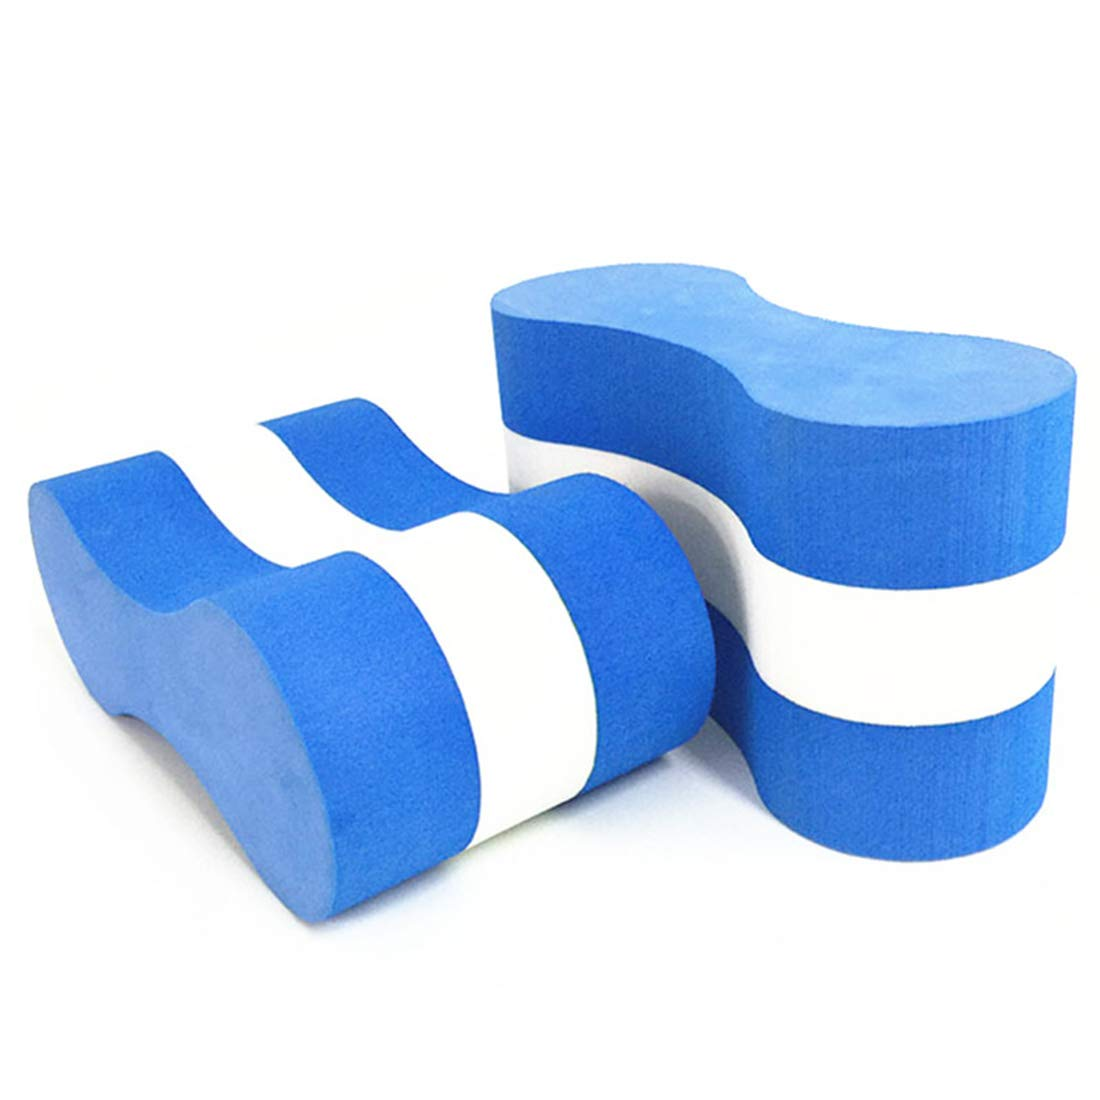 Children Kids Adults Swimming Training Learning Foam Pull Buoy Float Kickboard Swimming Pool Safety Aid Fitness Exercise Kits